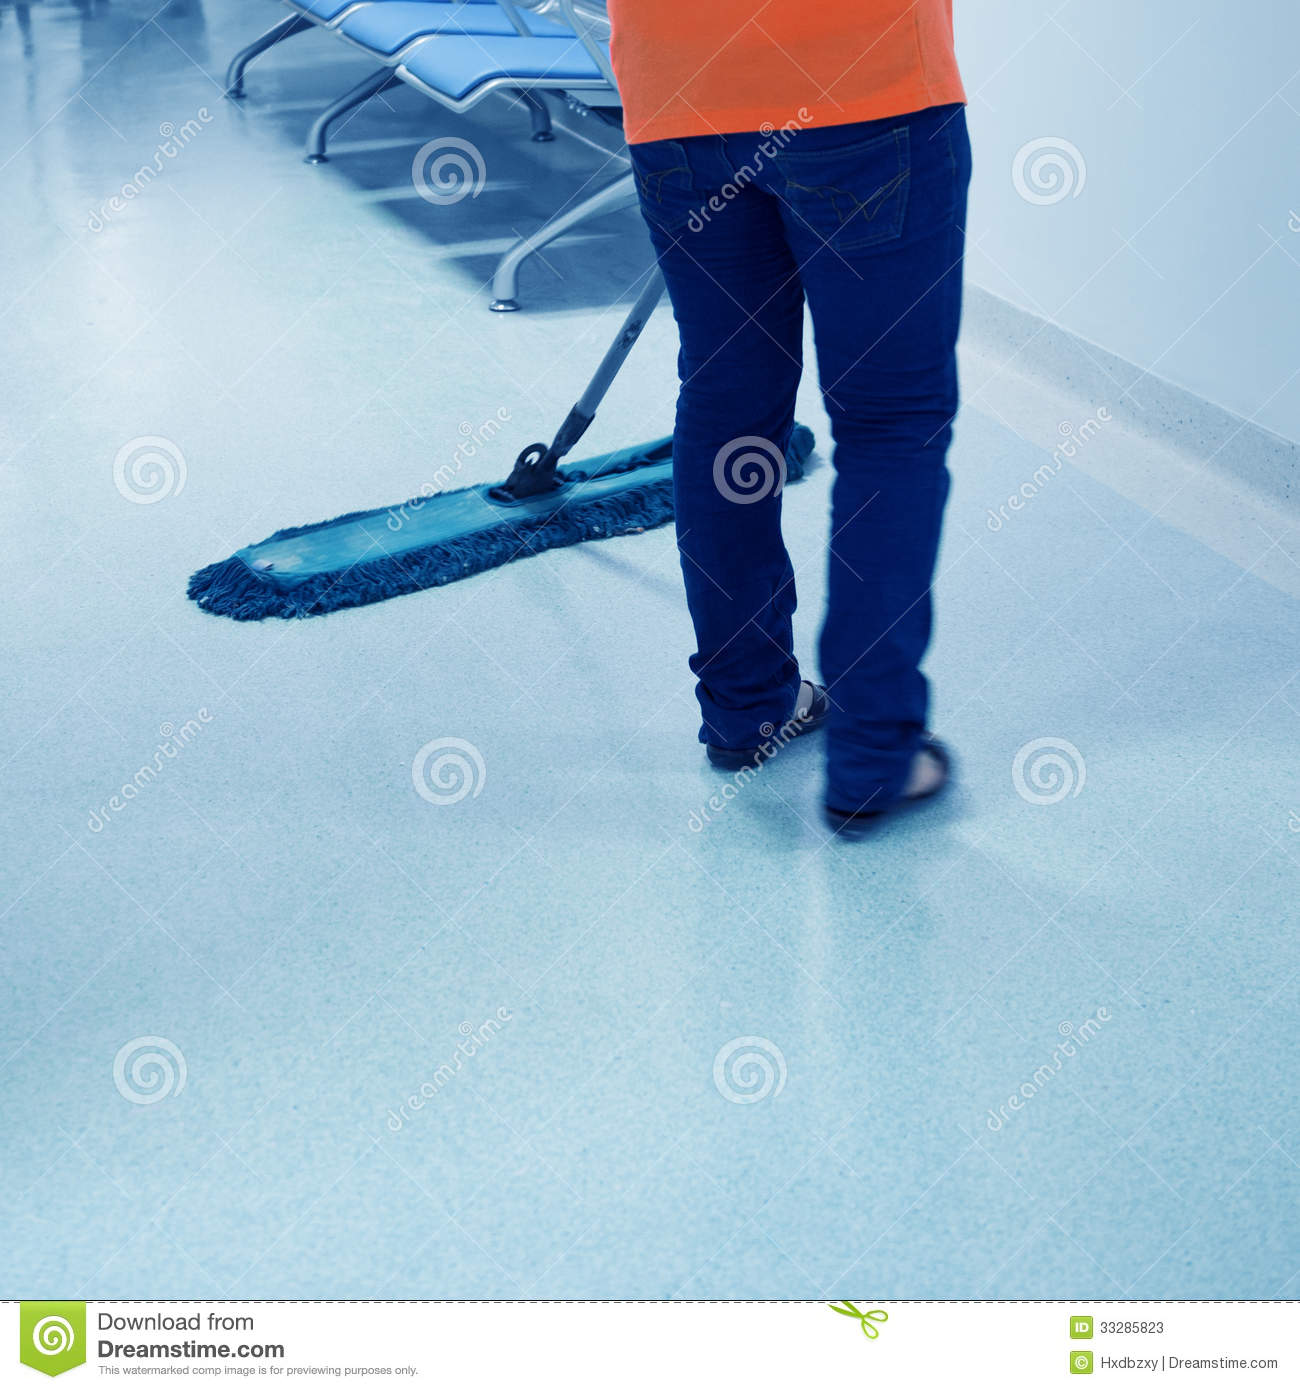 Cleaning floor stock image image of duty hospital for Floor someone